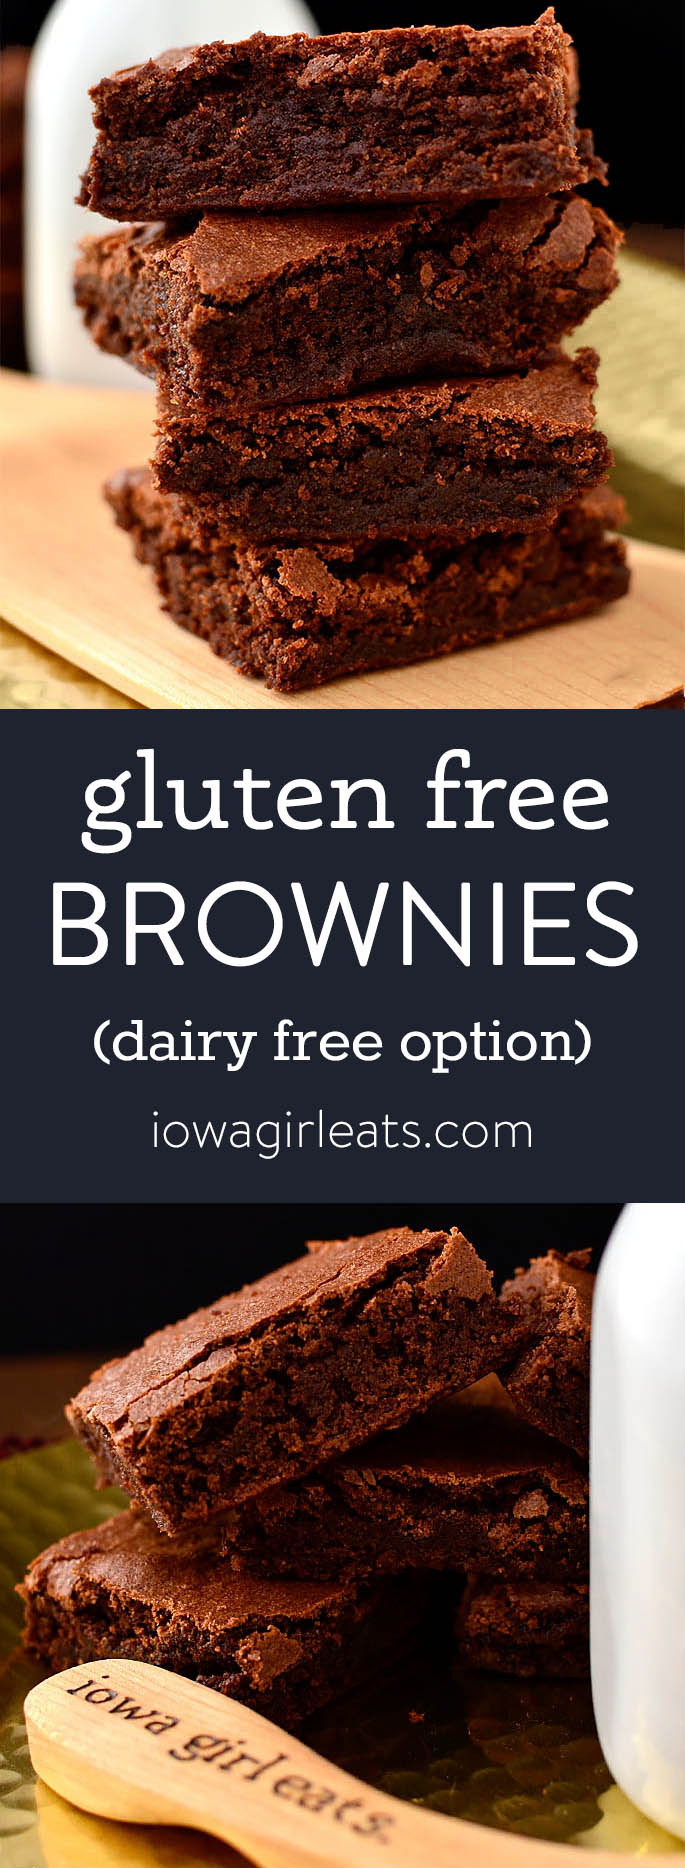 Photo collage of gluten free brownies